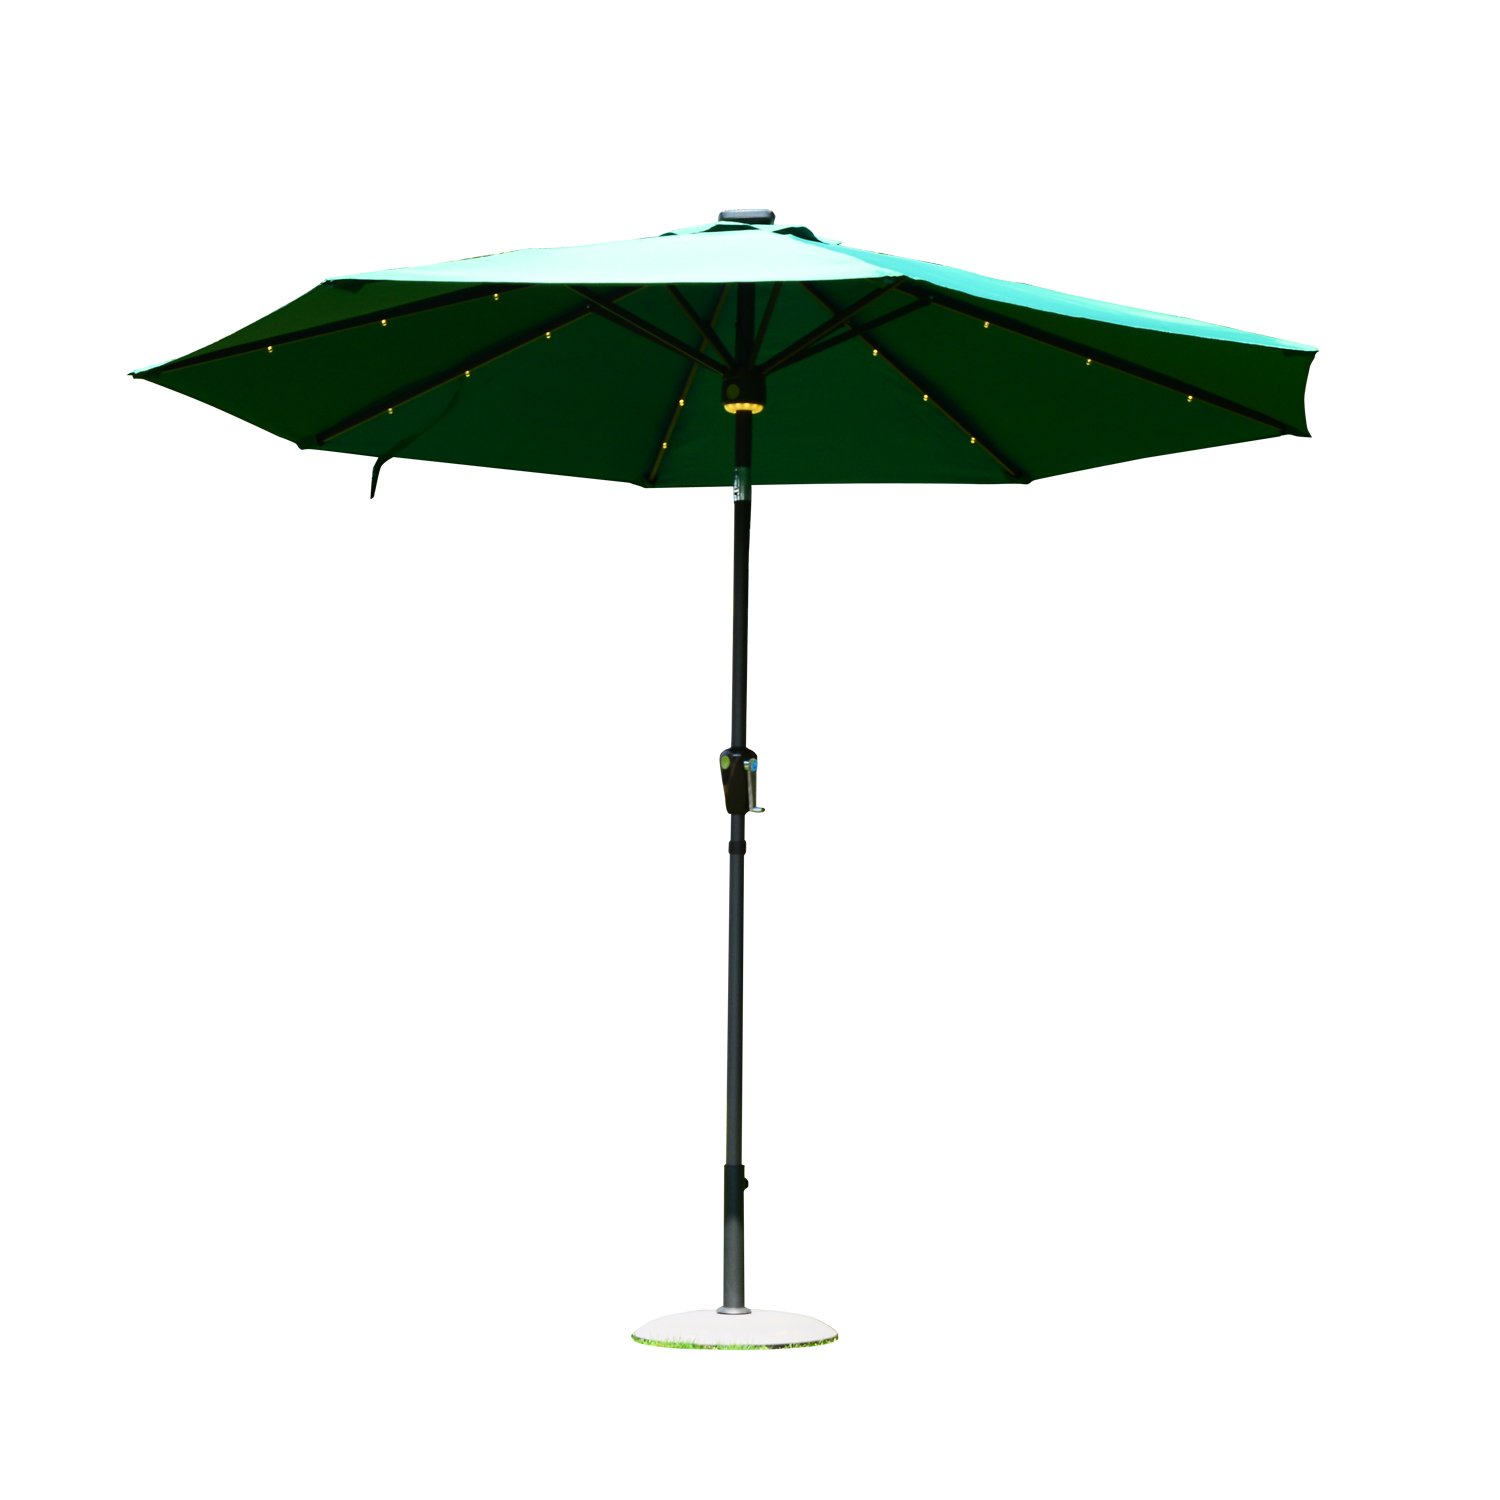 Outsunny 9' Solar LED Market Patio Umbrella w Bluetooth Green by Aosom